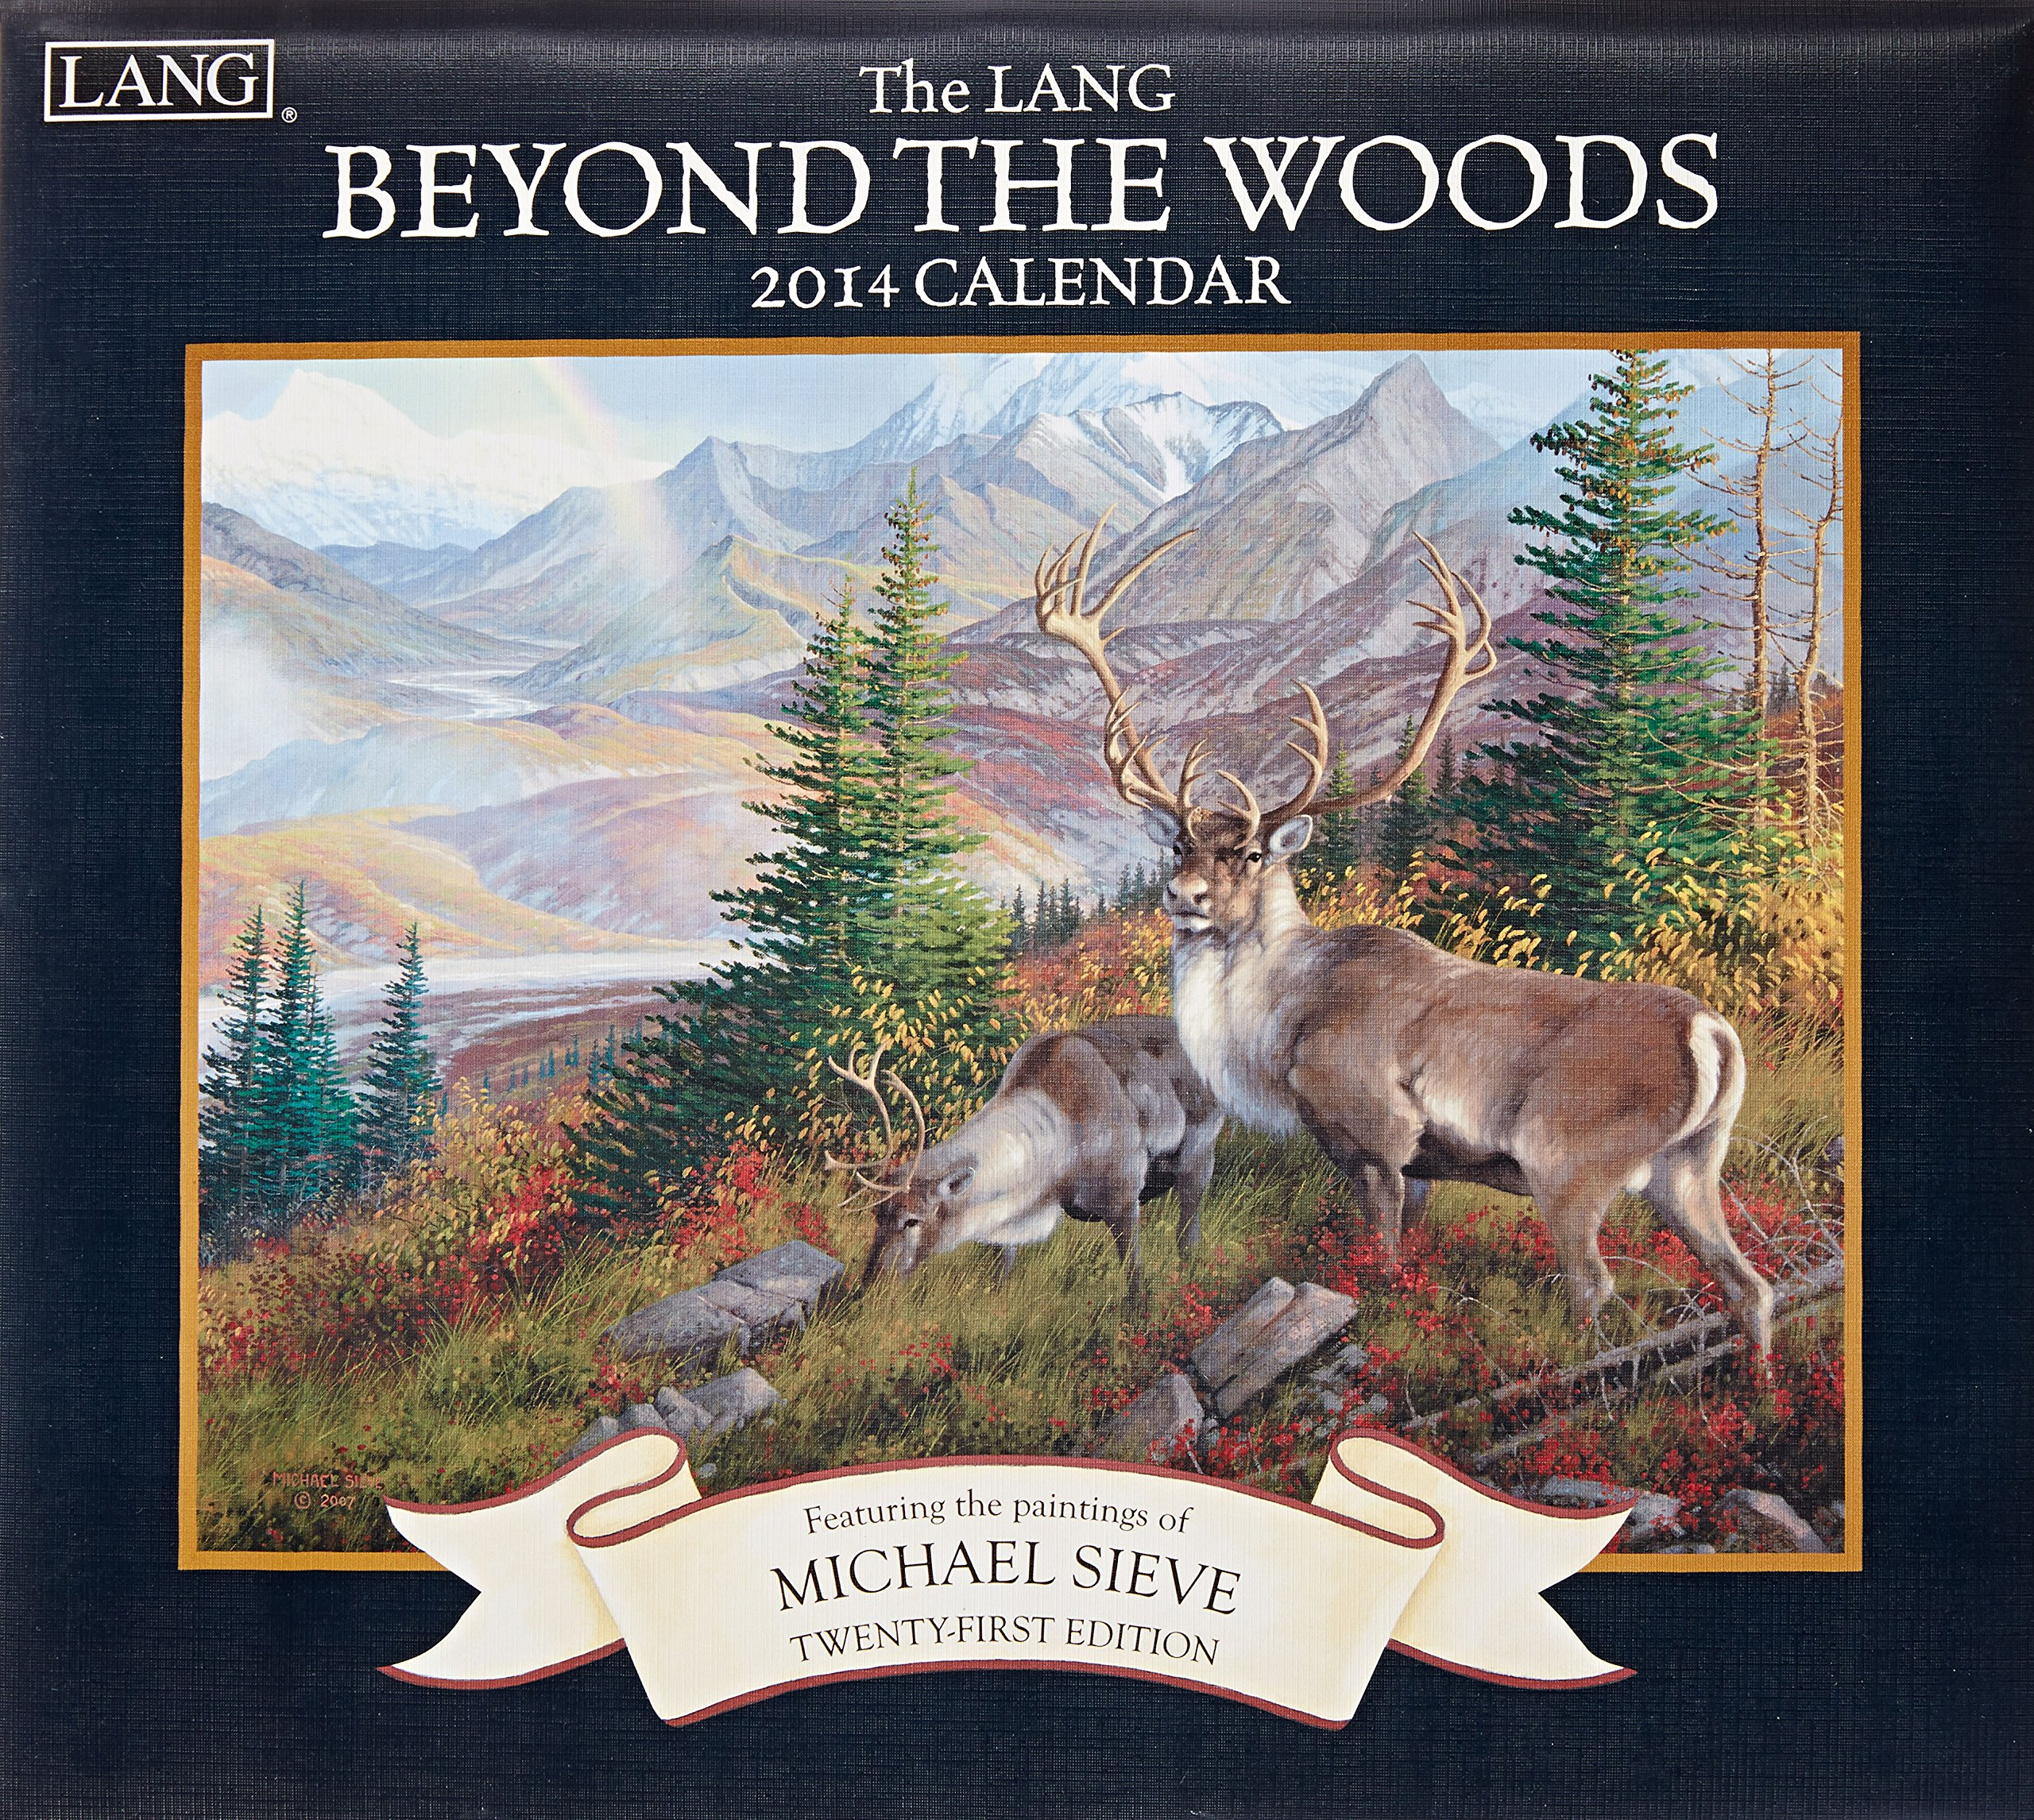 Lang Perfect Timing - Lang 2014 Beyond The Woods Wall Calendar, January 2014 - December 2014, 13.375 x 24 Inches (1001703) by LANG (Image #1)